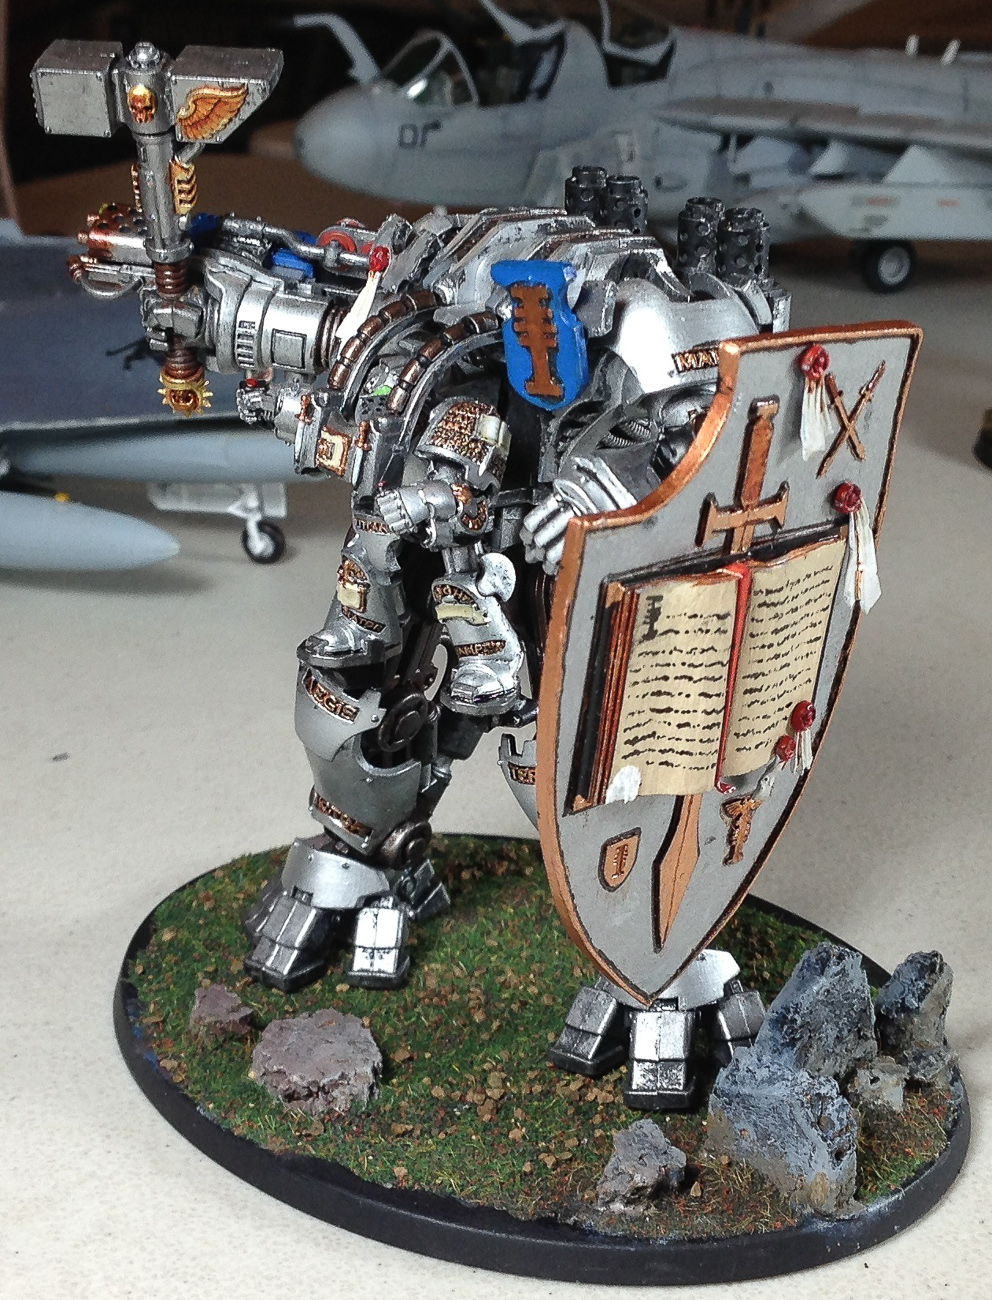 Ed Rose showed off his painting skills with this armored fighting figure from the Warhammer universe.